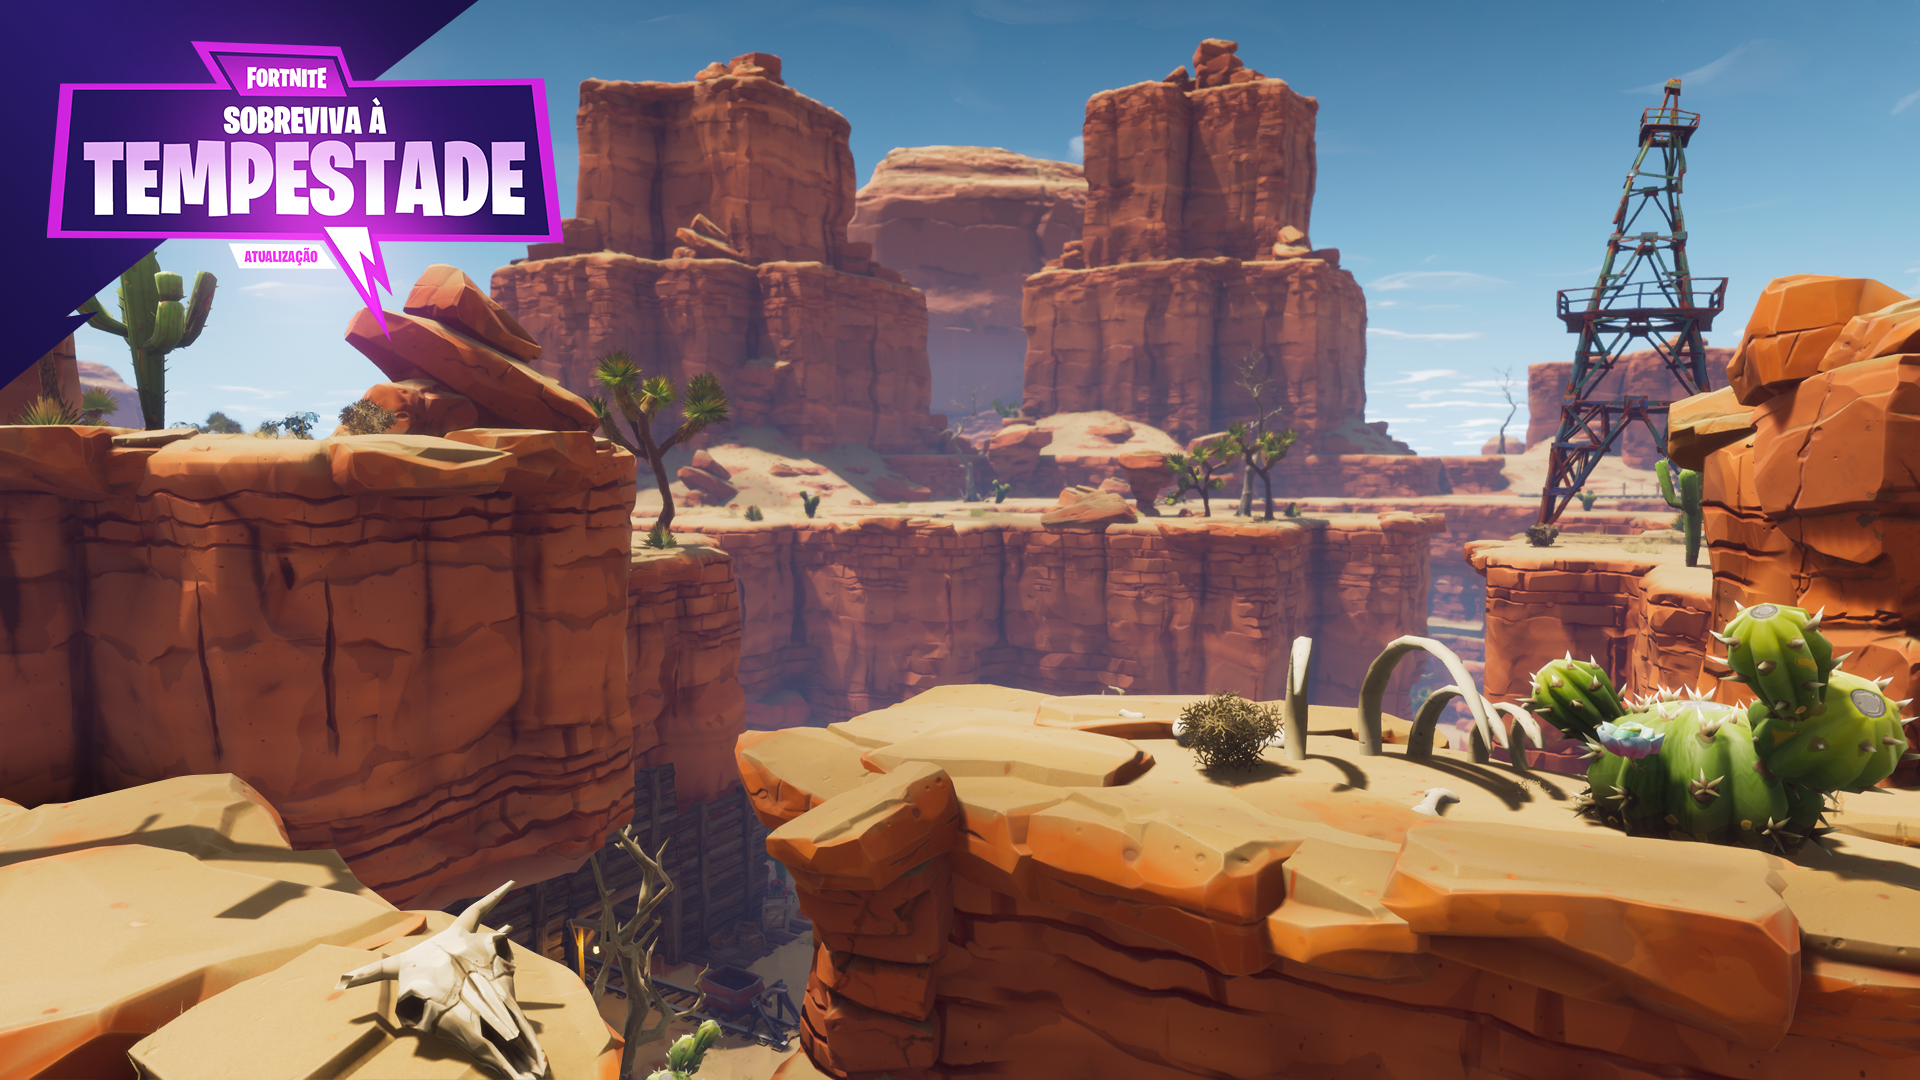 Fortnite%2Fblog%2Fsurvive-the-storm---release-notes%2FPT_1-Canny-Valley-1920x1080-201e971f6423a341829665beab850382c0c33a46